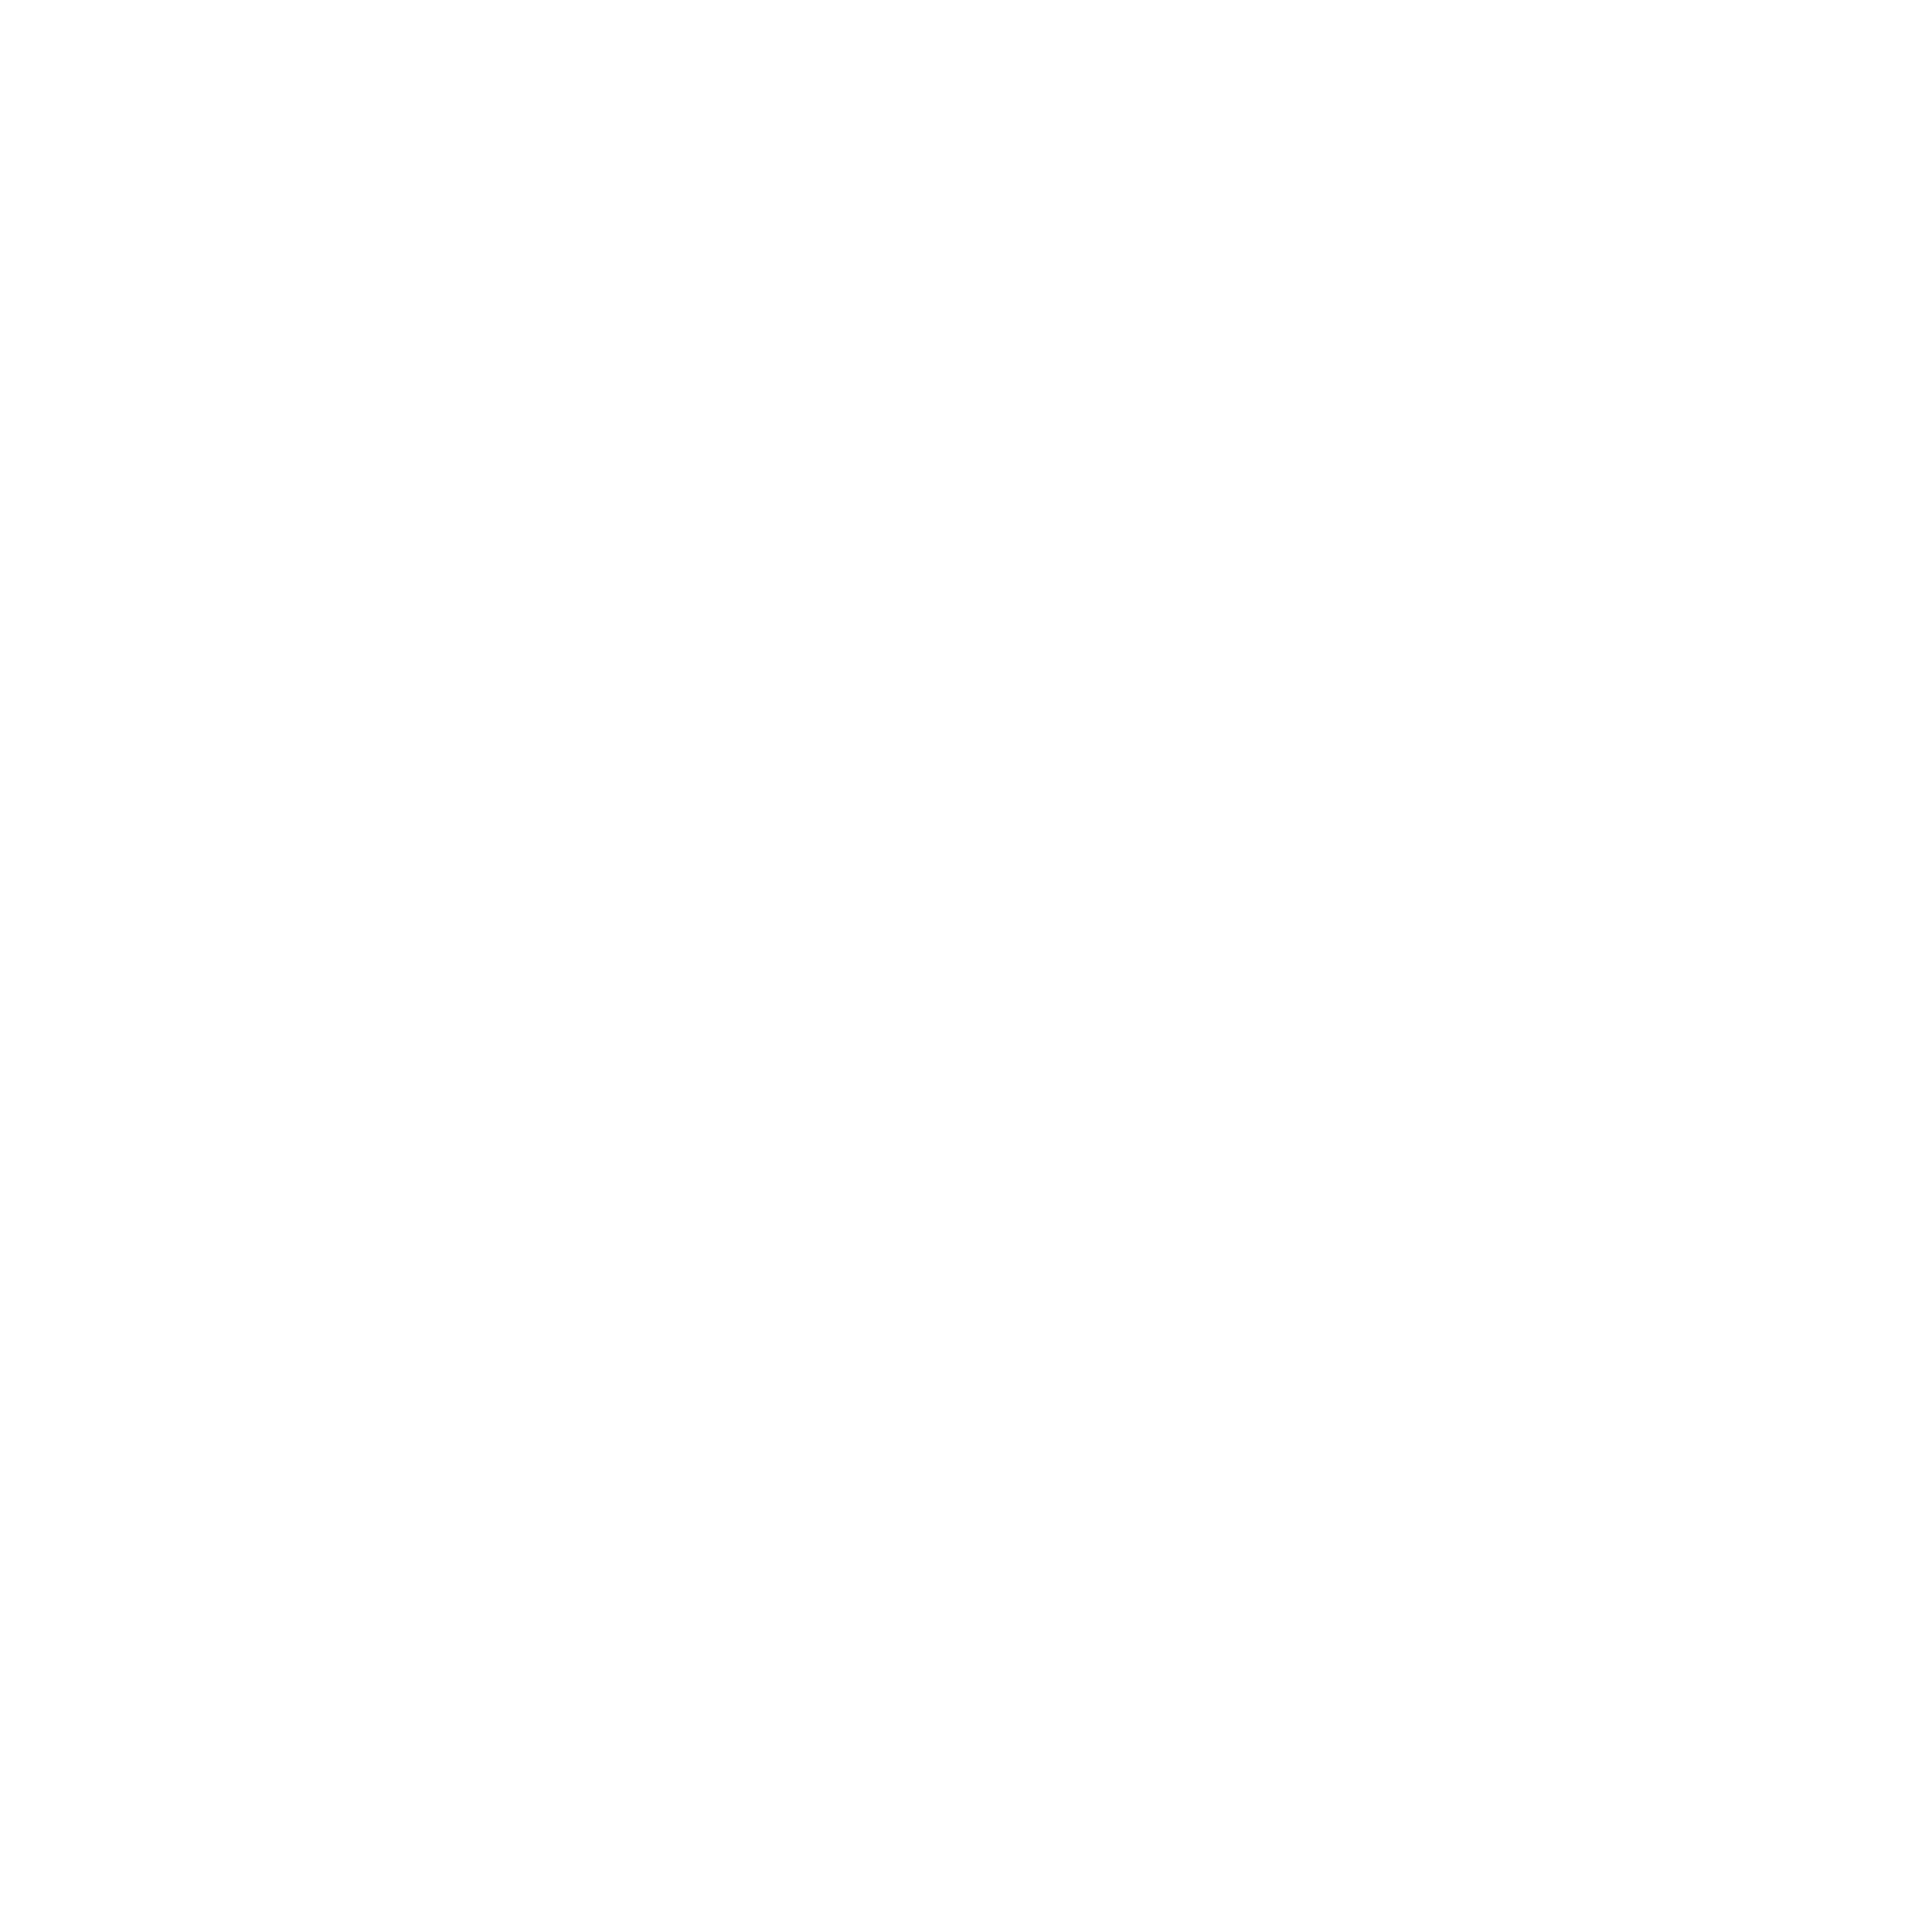 UNITED ARMORY